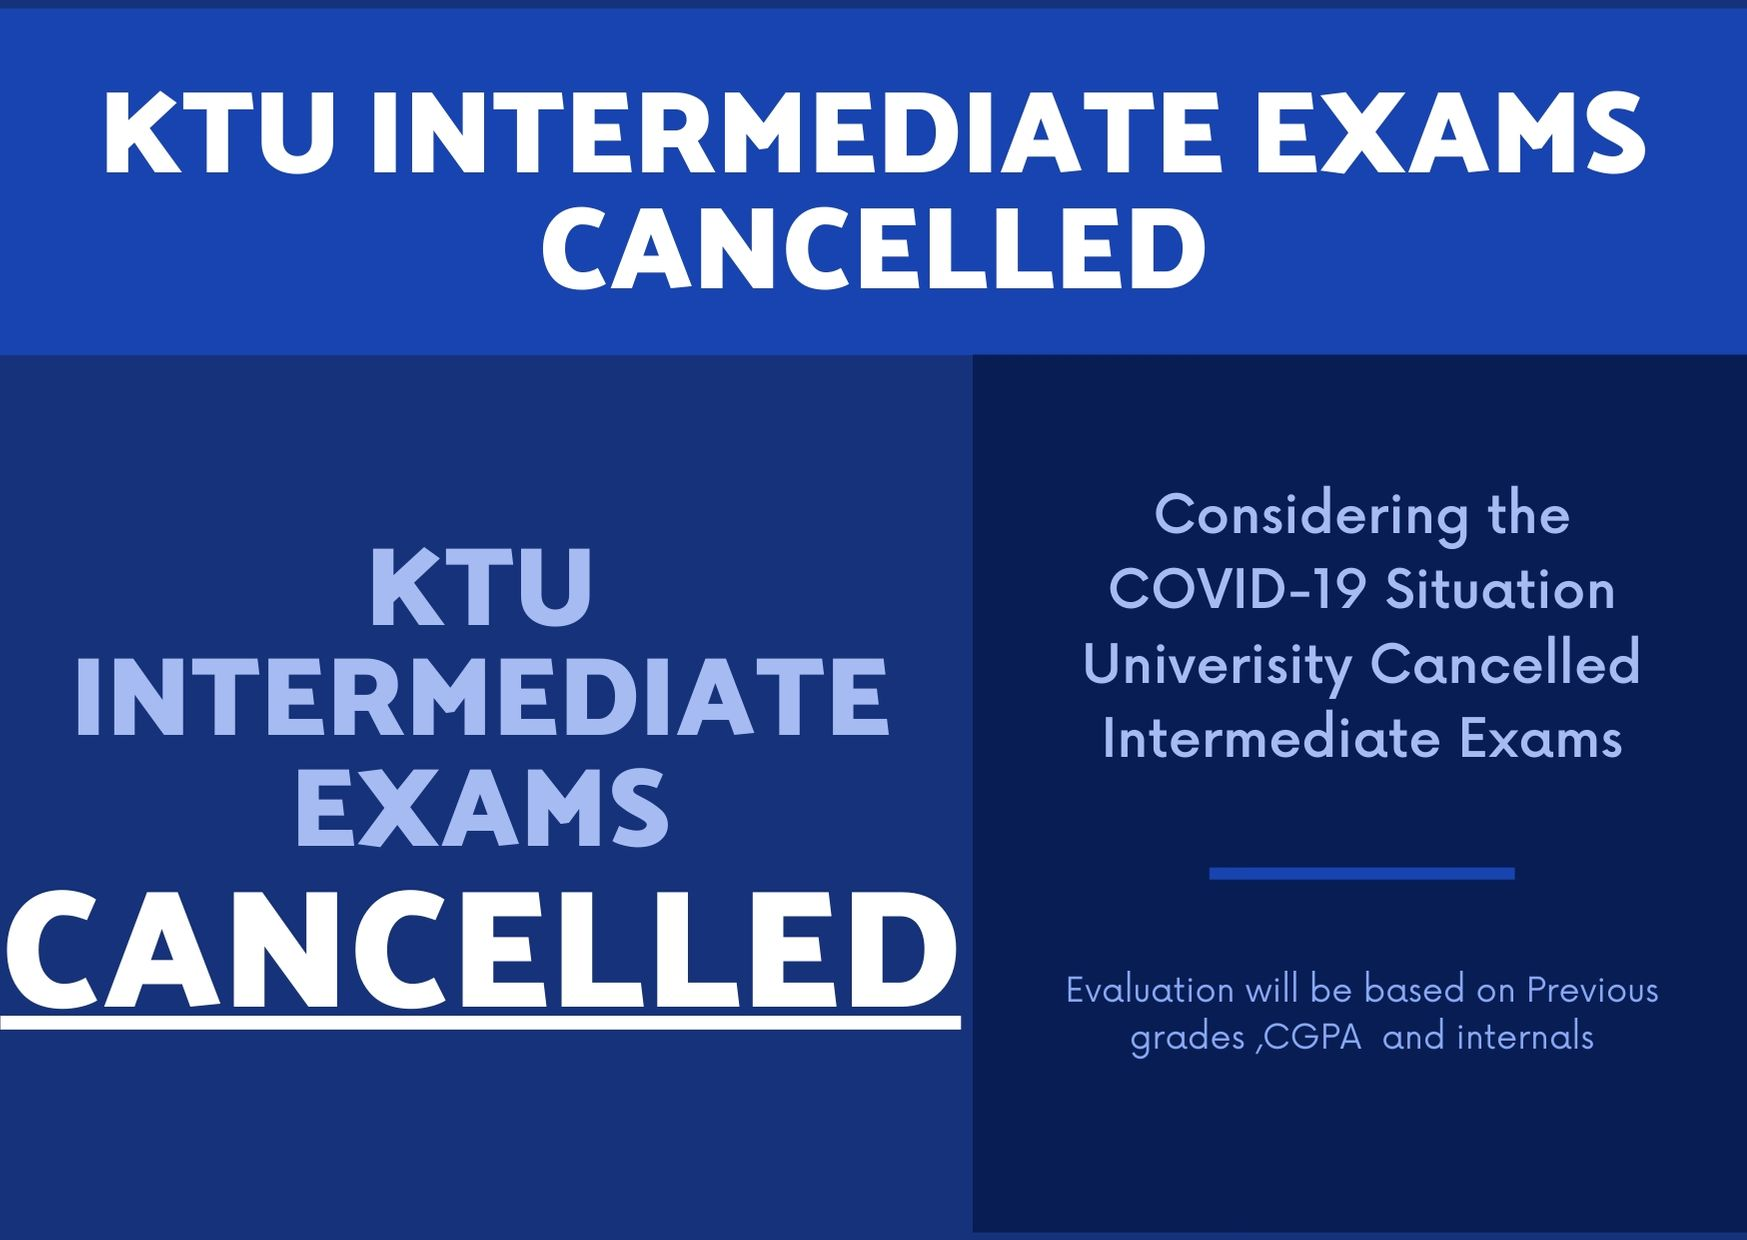 KTU Intermediate Exams Cancelled